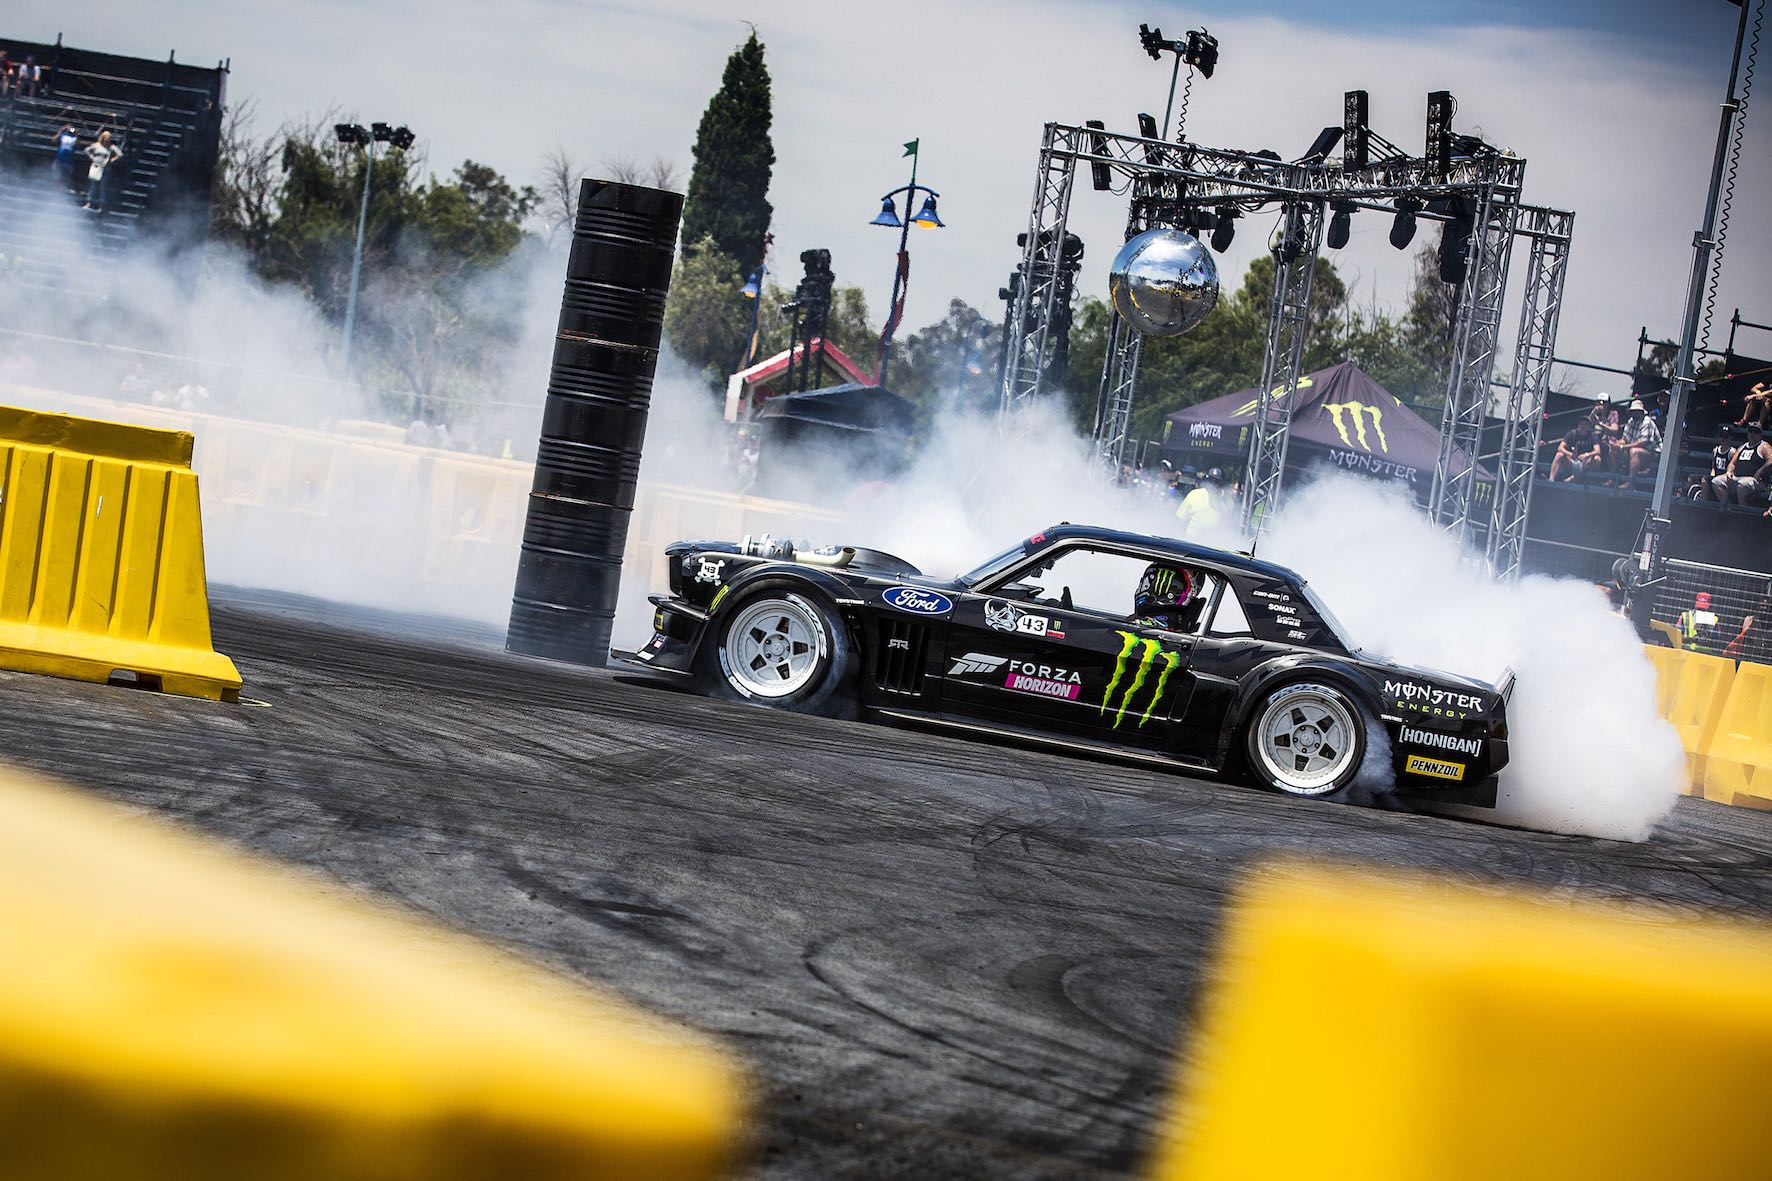 Ken Block winning the Smoke and Style competition at Gymkhana GRiD 2018